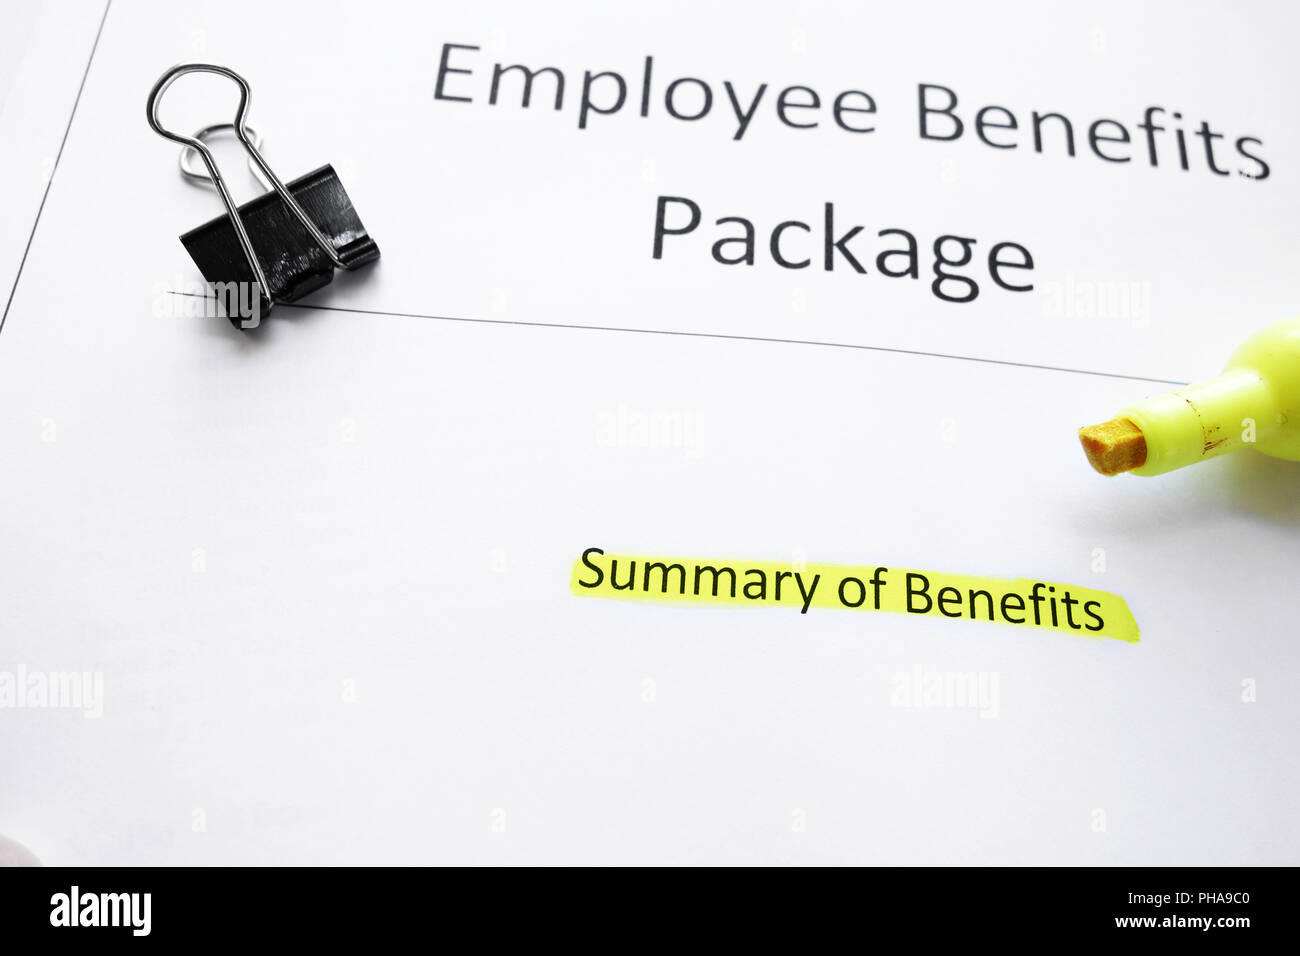 benefits package - Stock Image